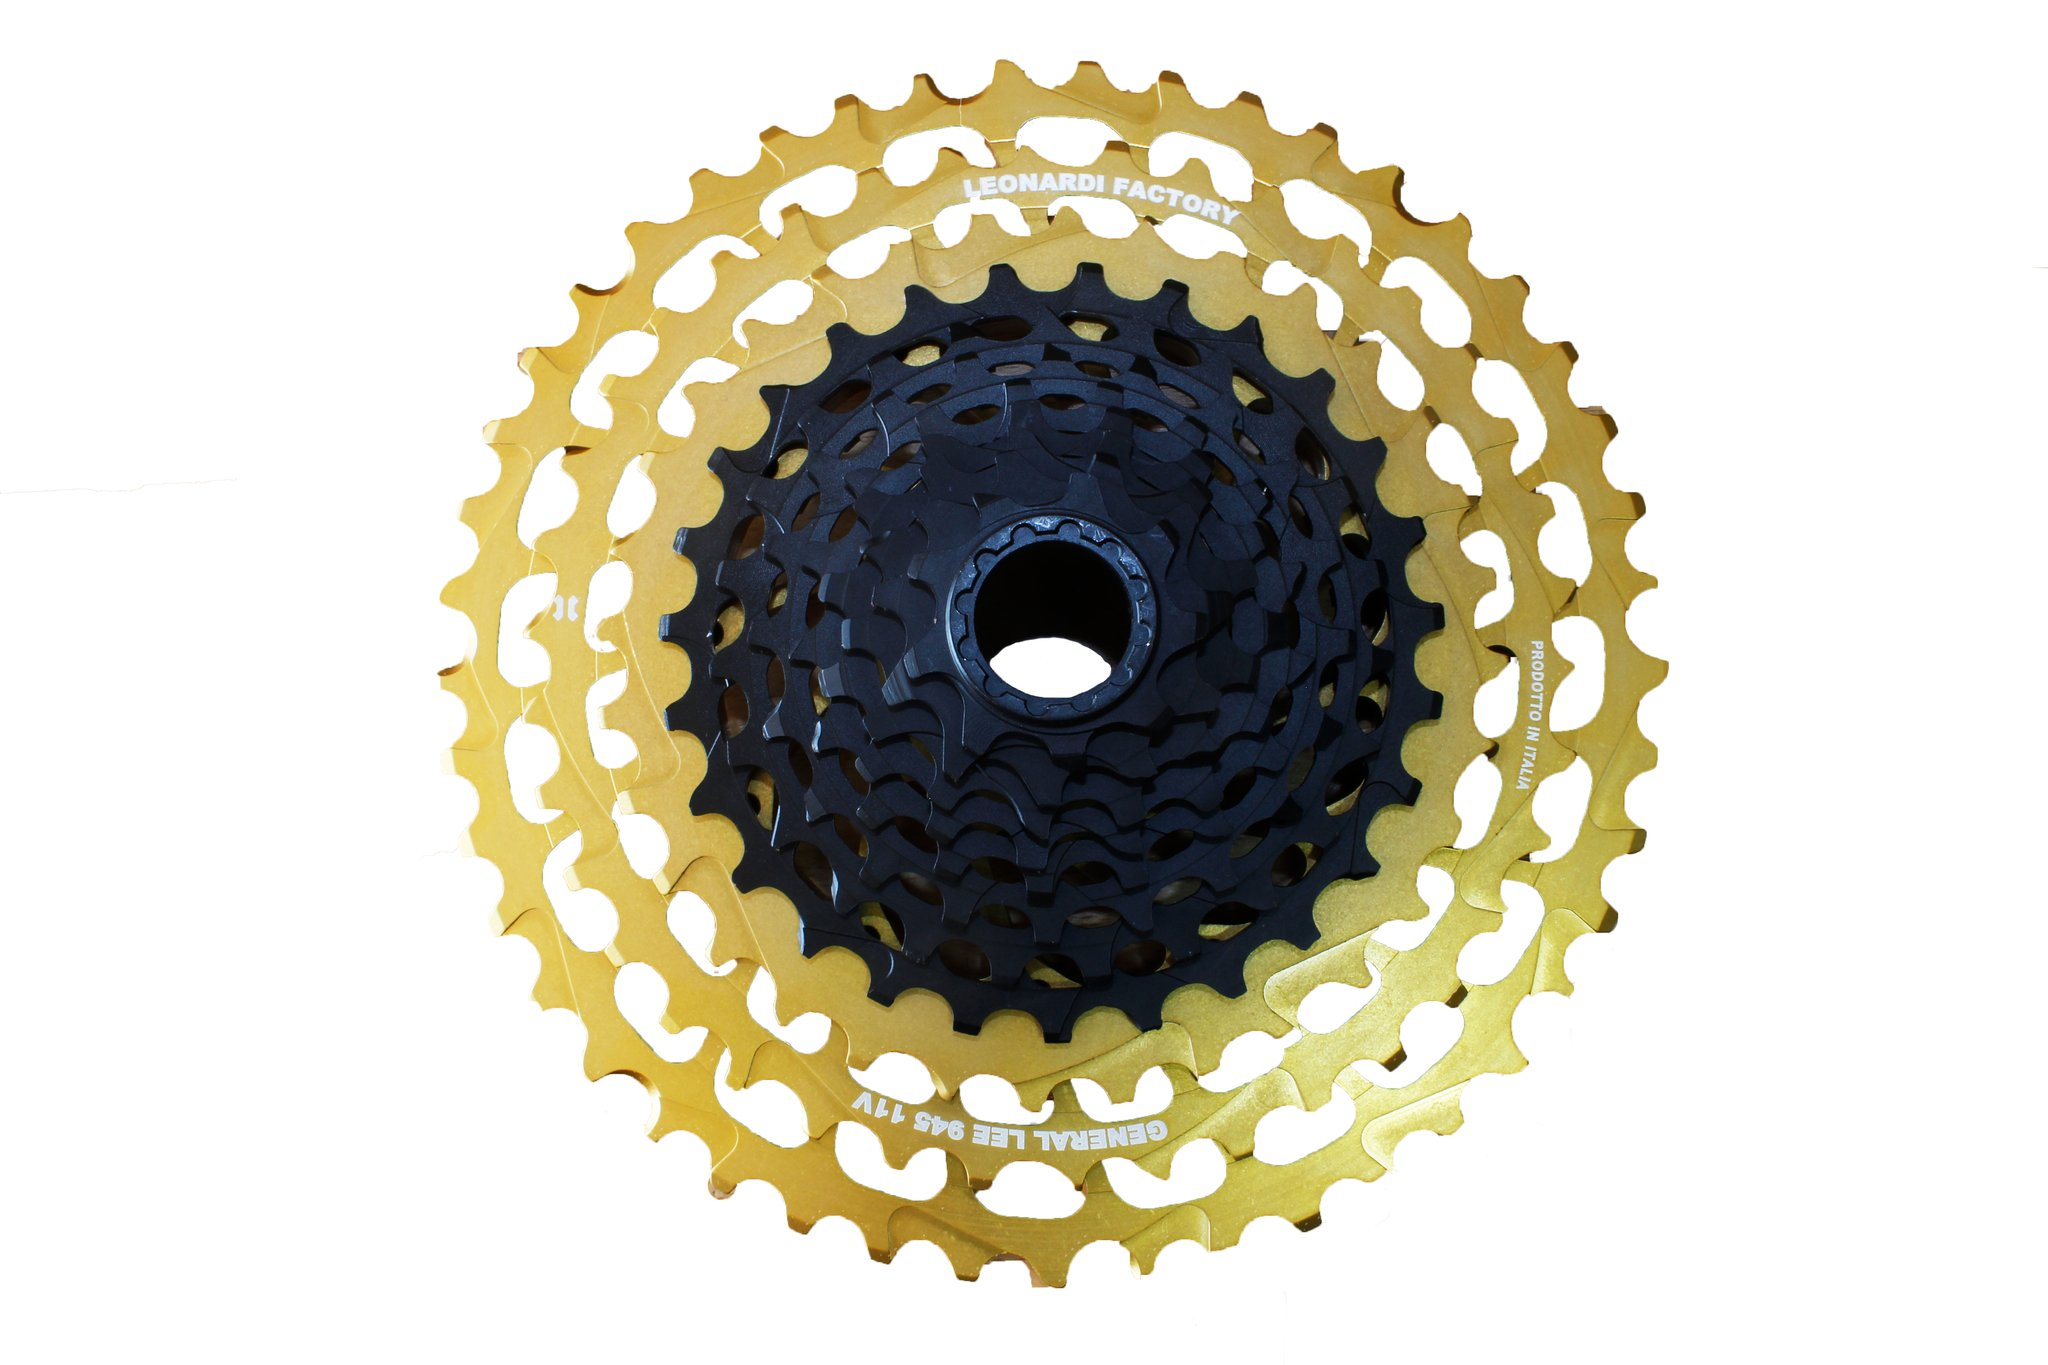 Leonardi Factory General Lee 945 V11 - 11 Speed Cassette Black/Gold MAIN